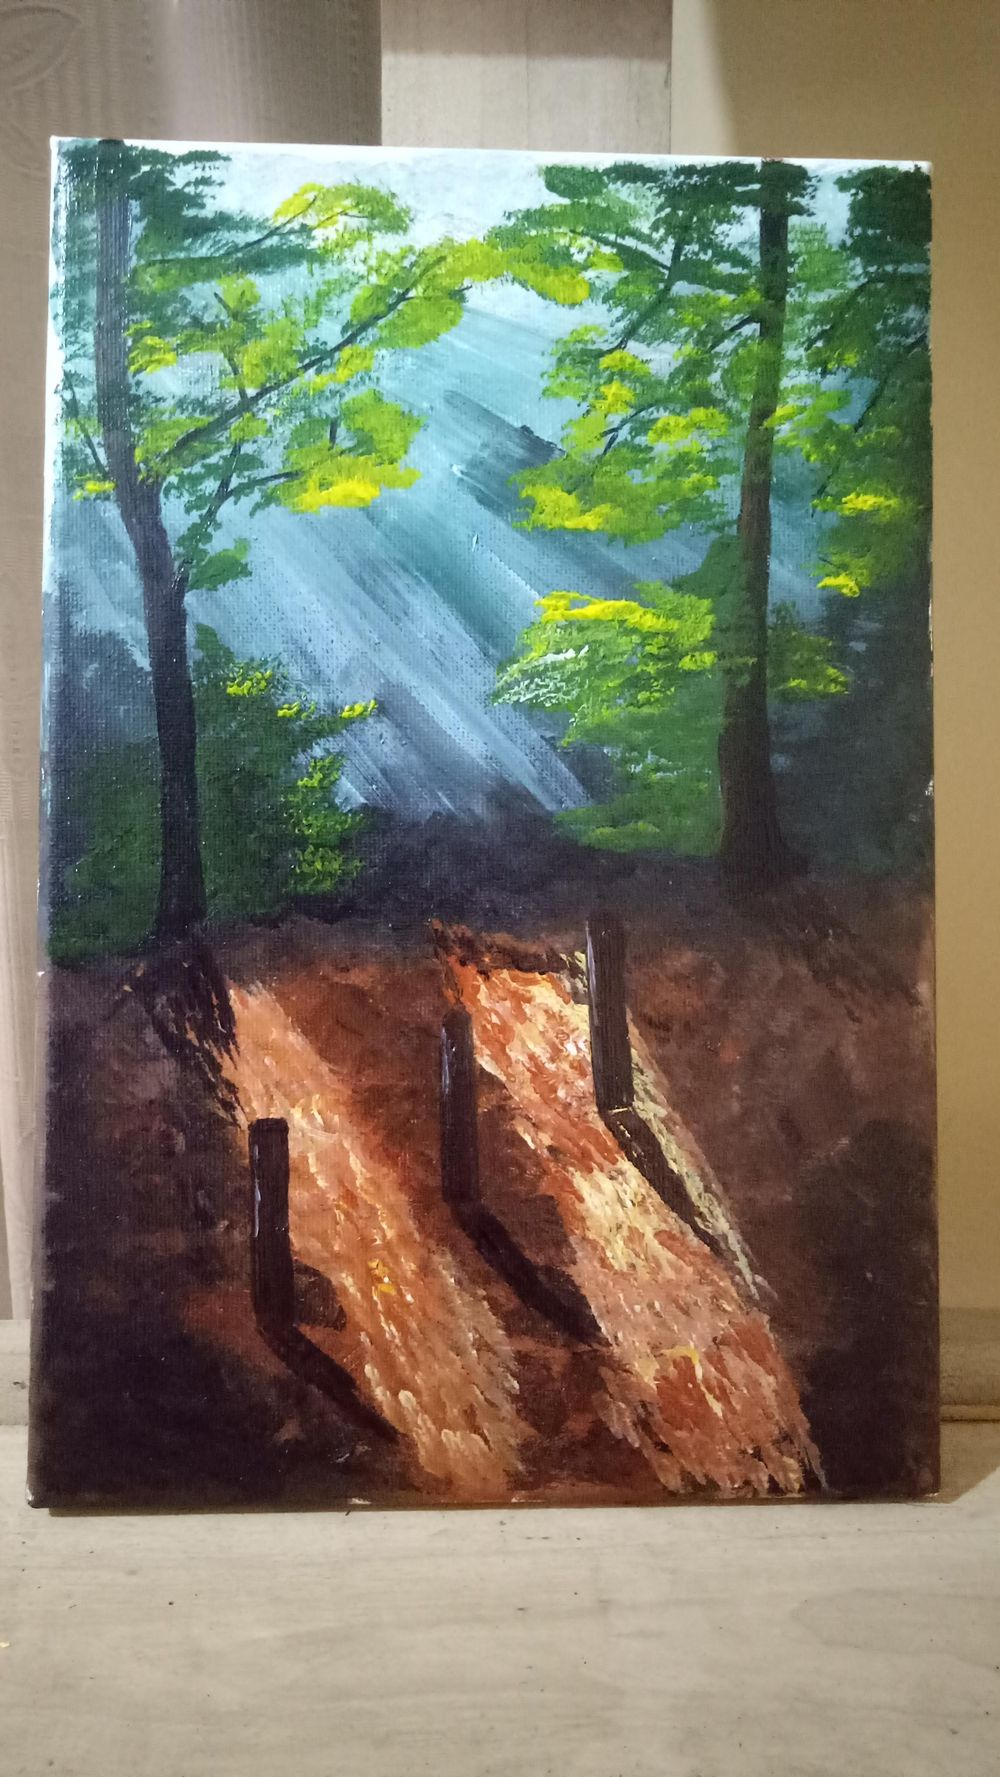 Acrylic painting - image 1 - student project